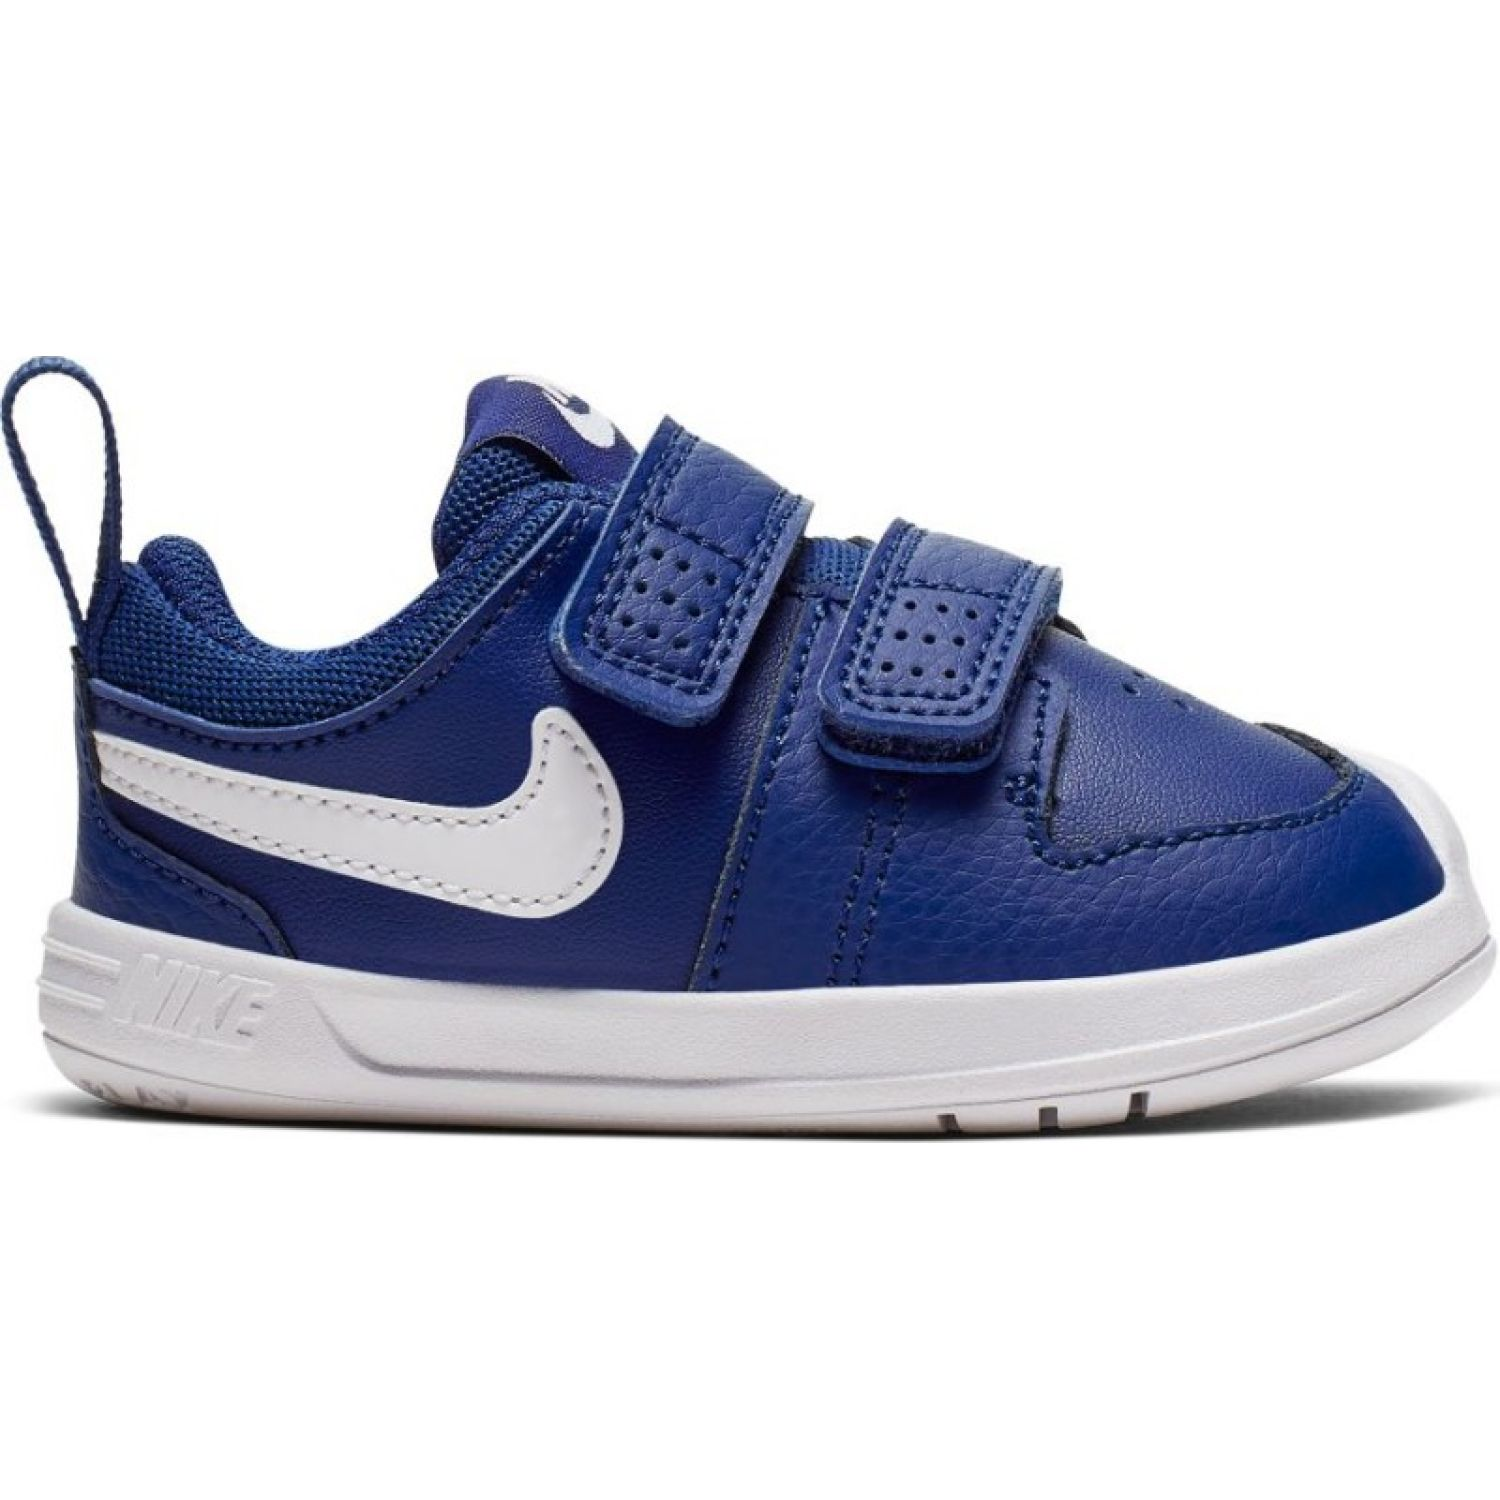 Nike Nike Pico 5 Tdv Azul / blanco Fitness y Cross-Training